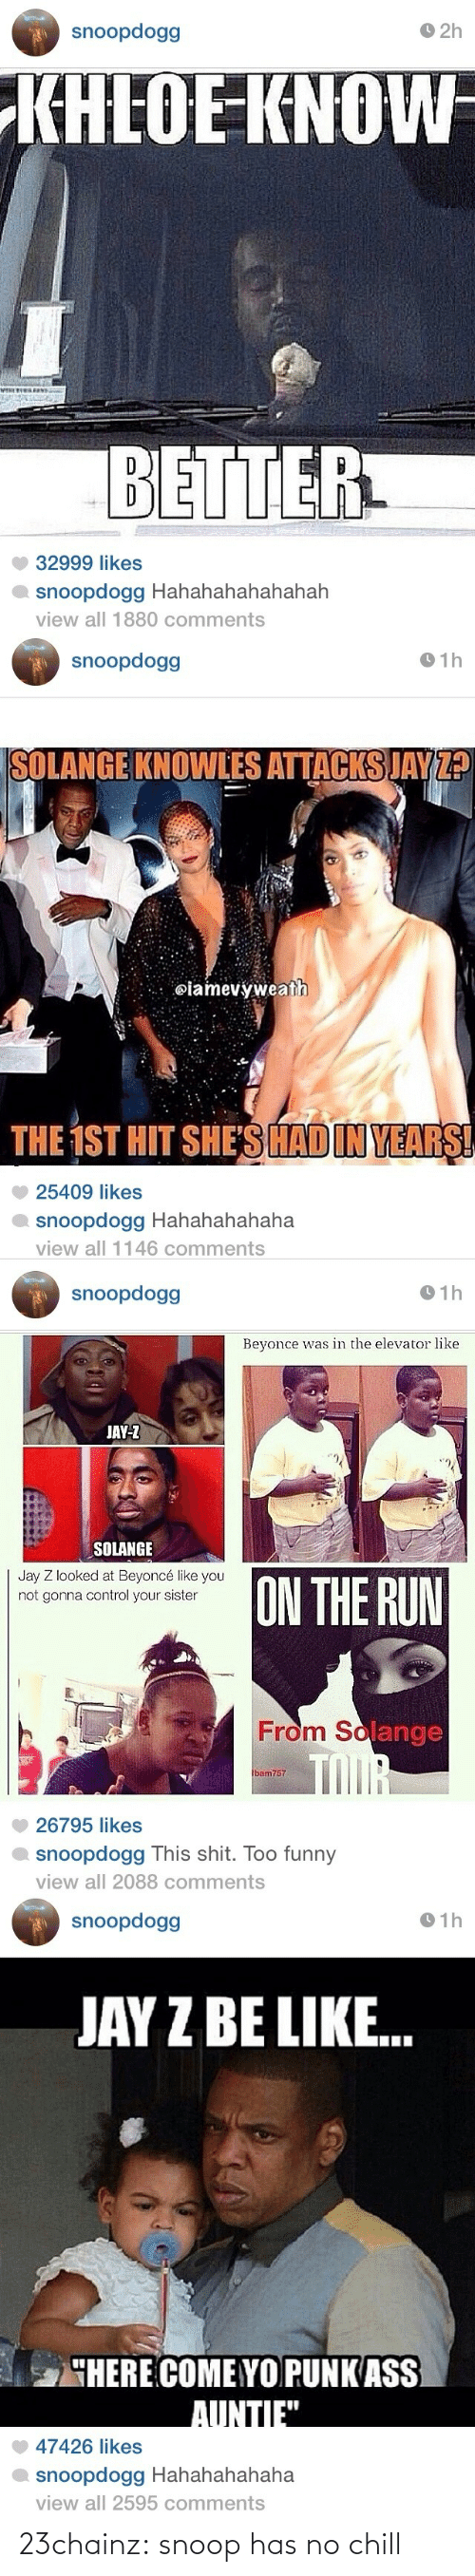 """Hahahahahahahah: O 2h  snoopdogg  KHLOE KNOW  BETTER  32999 likes  snoopdogg Hahahahahahahah  view all 1880 comments   O 1h  snoopdogg  SOLANGE KNOWLES ATTACKS JAY ?  @iamevýweath  THE 1ST HIT SHE'S HADIN YEARS!  25409 likes  snoopdogg Hahahahahaha  view all 1146 comments   snoopdogg  O 1h  Beyonce was in the elevator like  JAY-Z  SOLANGE  Jay Z looked at Beyoncé like you  not gonna control your sister  ON THE RUN  From Solange  TOUR  bam757  26795 likes  snoopdogg This shit. Too funny  view all 2088 comments   O 1h  66opdoous  JAY Z BE LIKE.  4HERE COME YOPUNK ASS  AUNTIE"""".  47426 likes  snoopdogg Hahahahahaha  view all 2595 comments 23chainz:  snoop has no chill"""